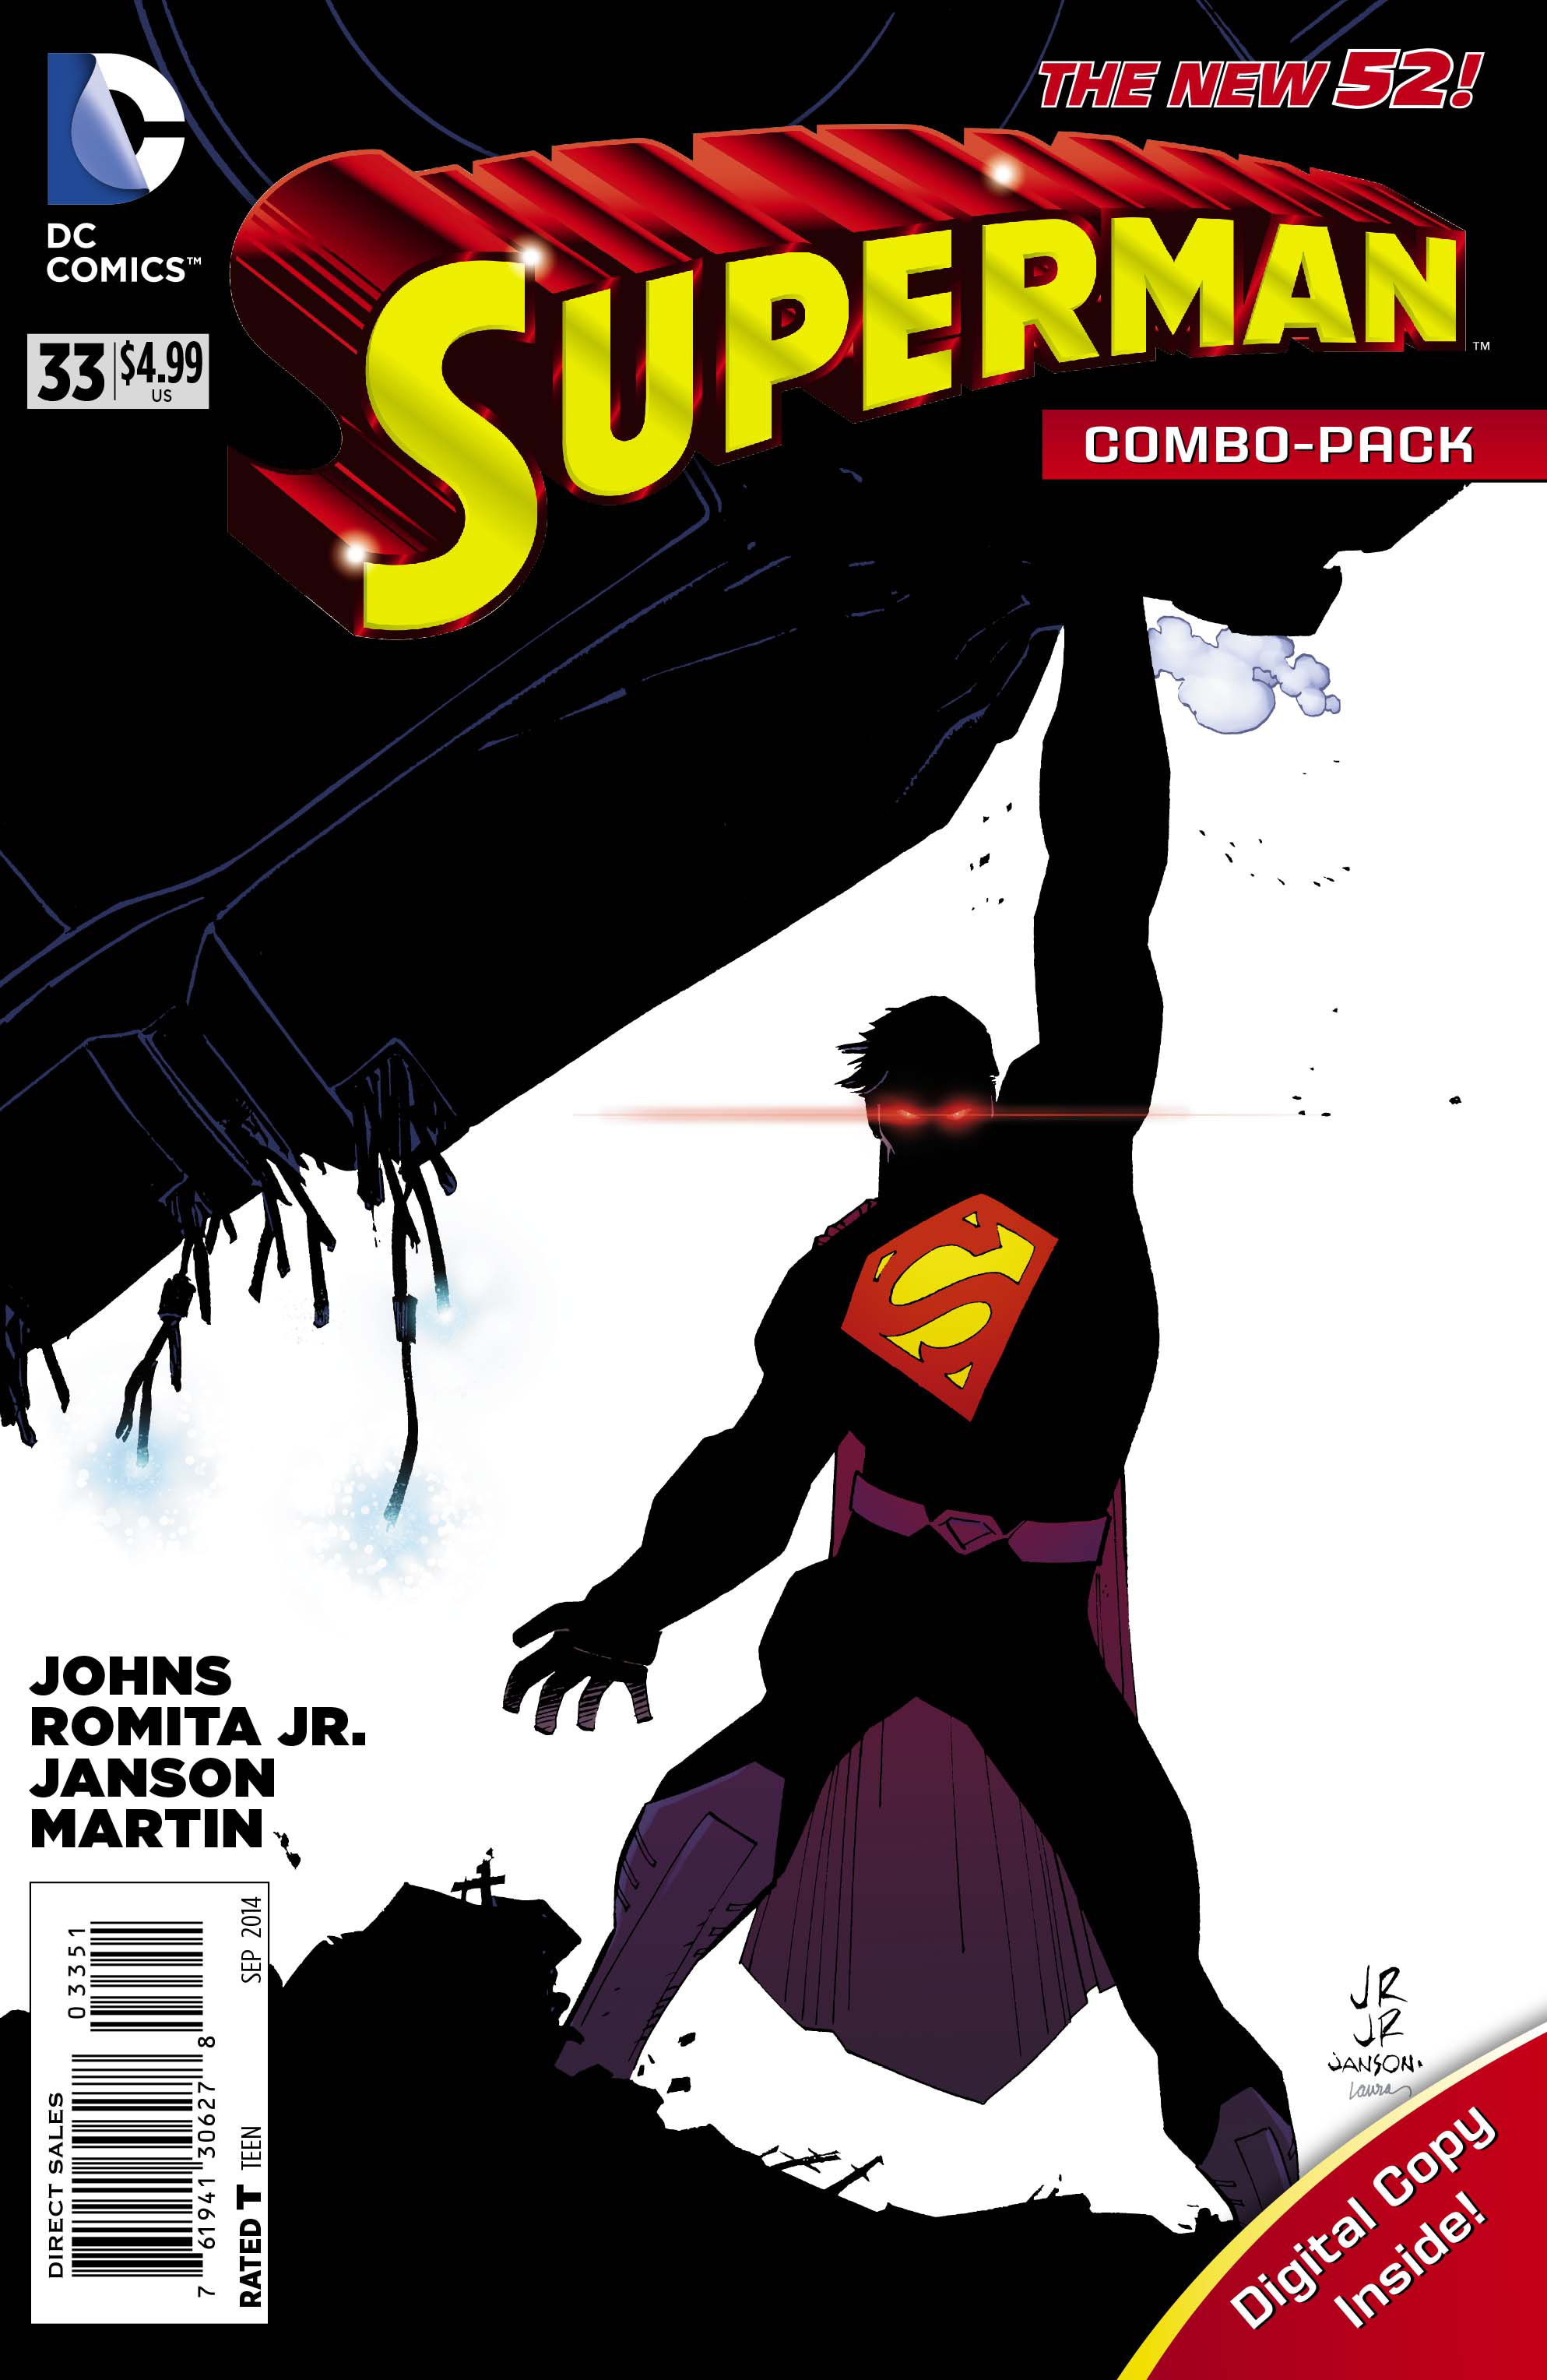 SUPERMAN #33 COMBO PACK